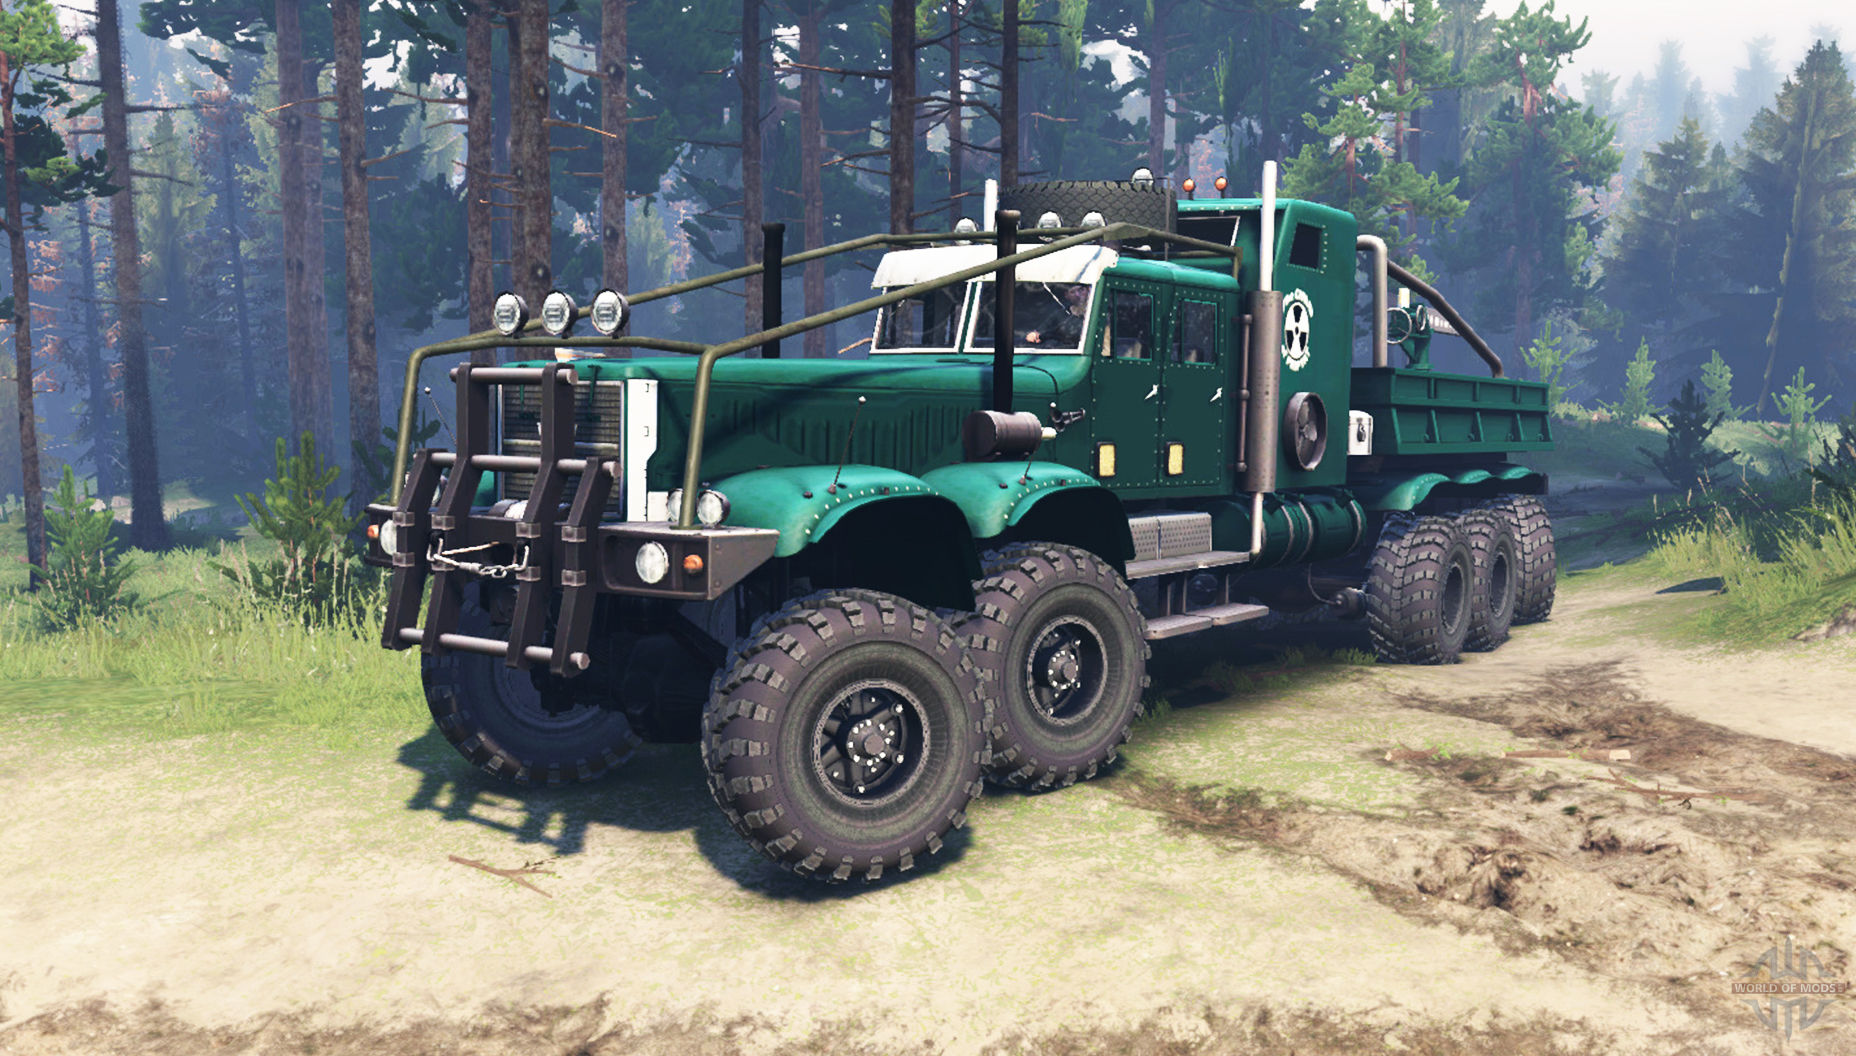 Kraz 255 Extended Truck Spintires 03 03 16 Spintires